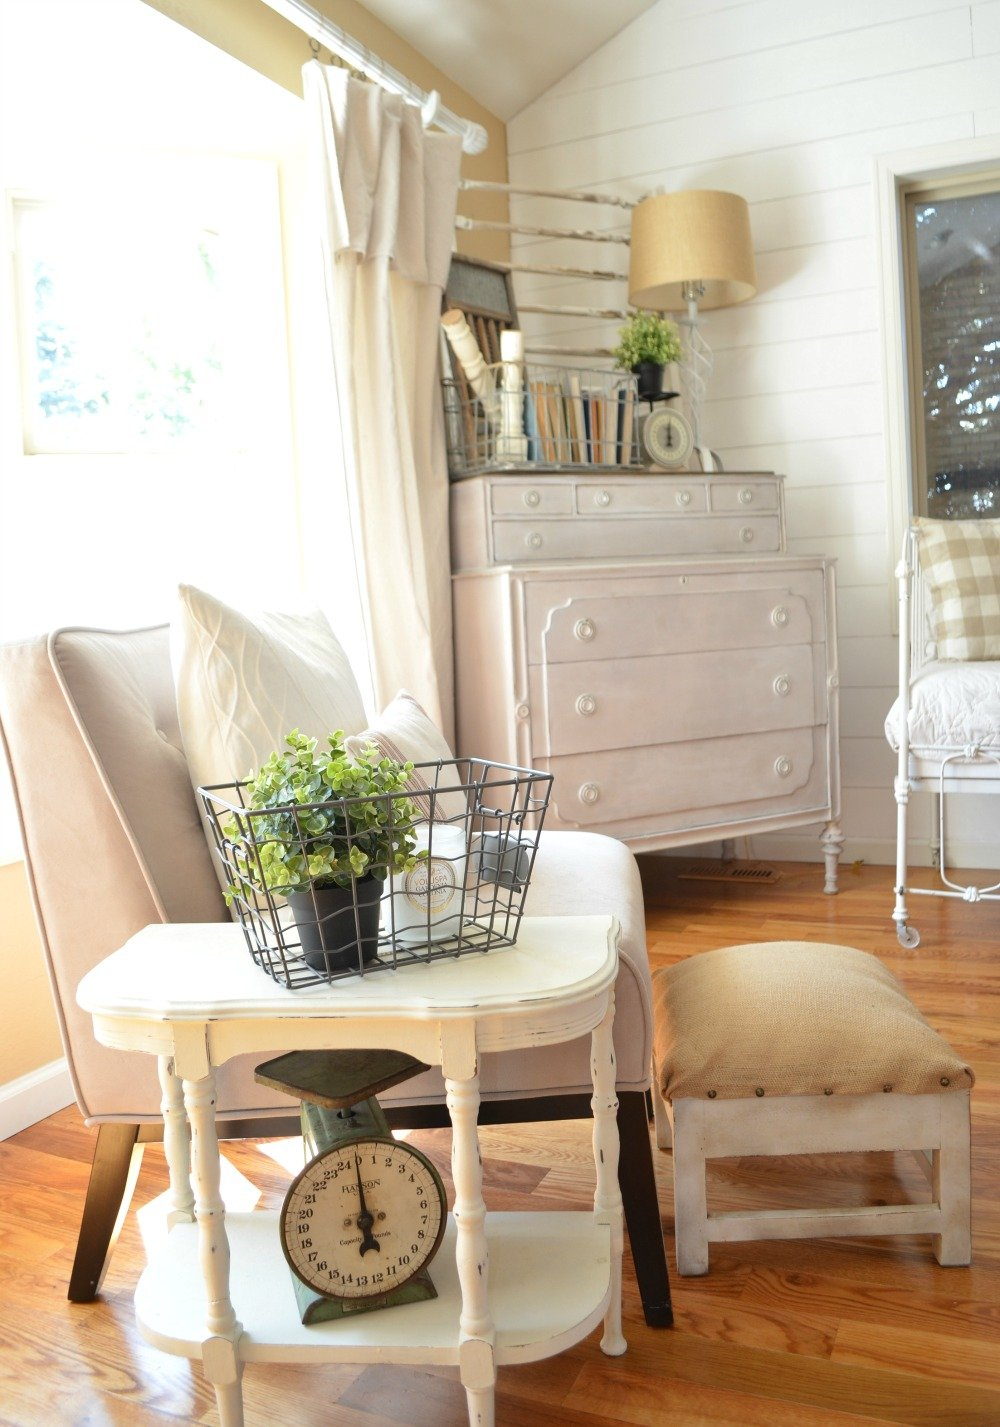 Farmhouse Decor and Vintage Scale